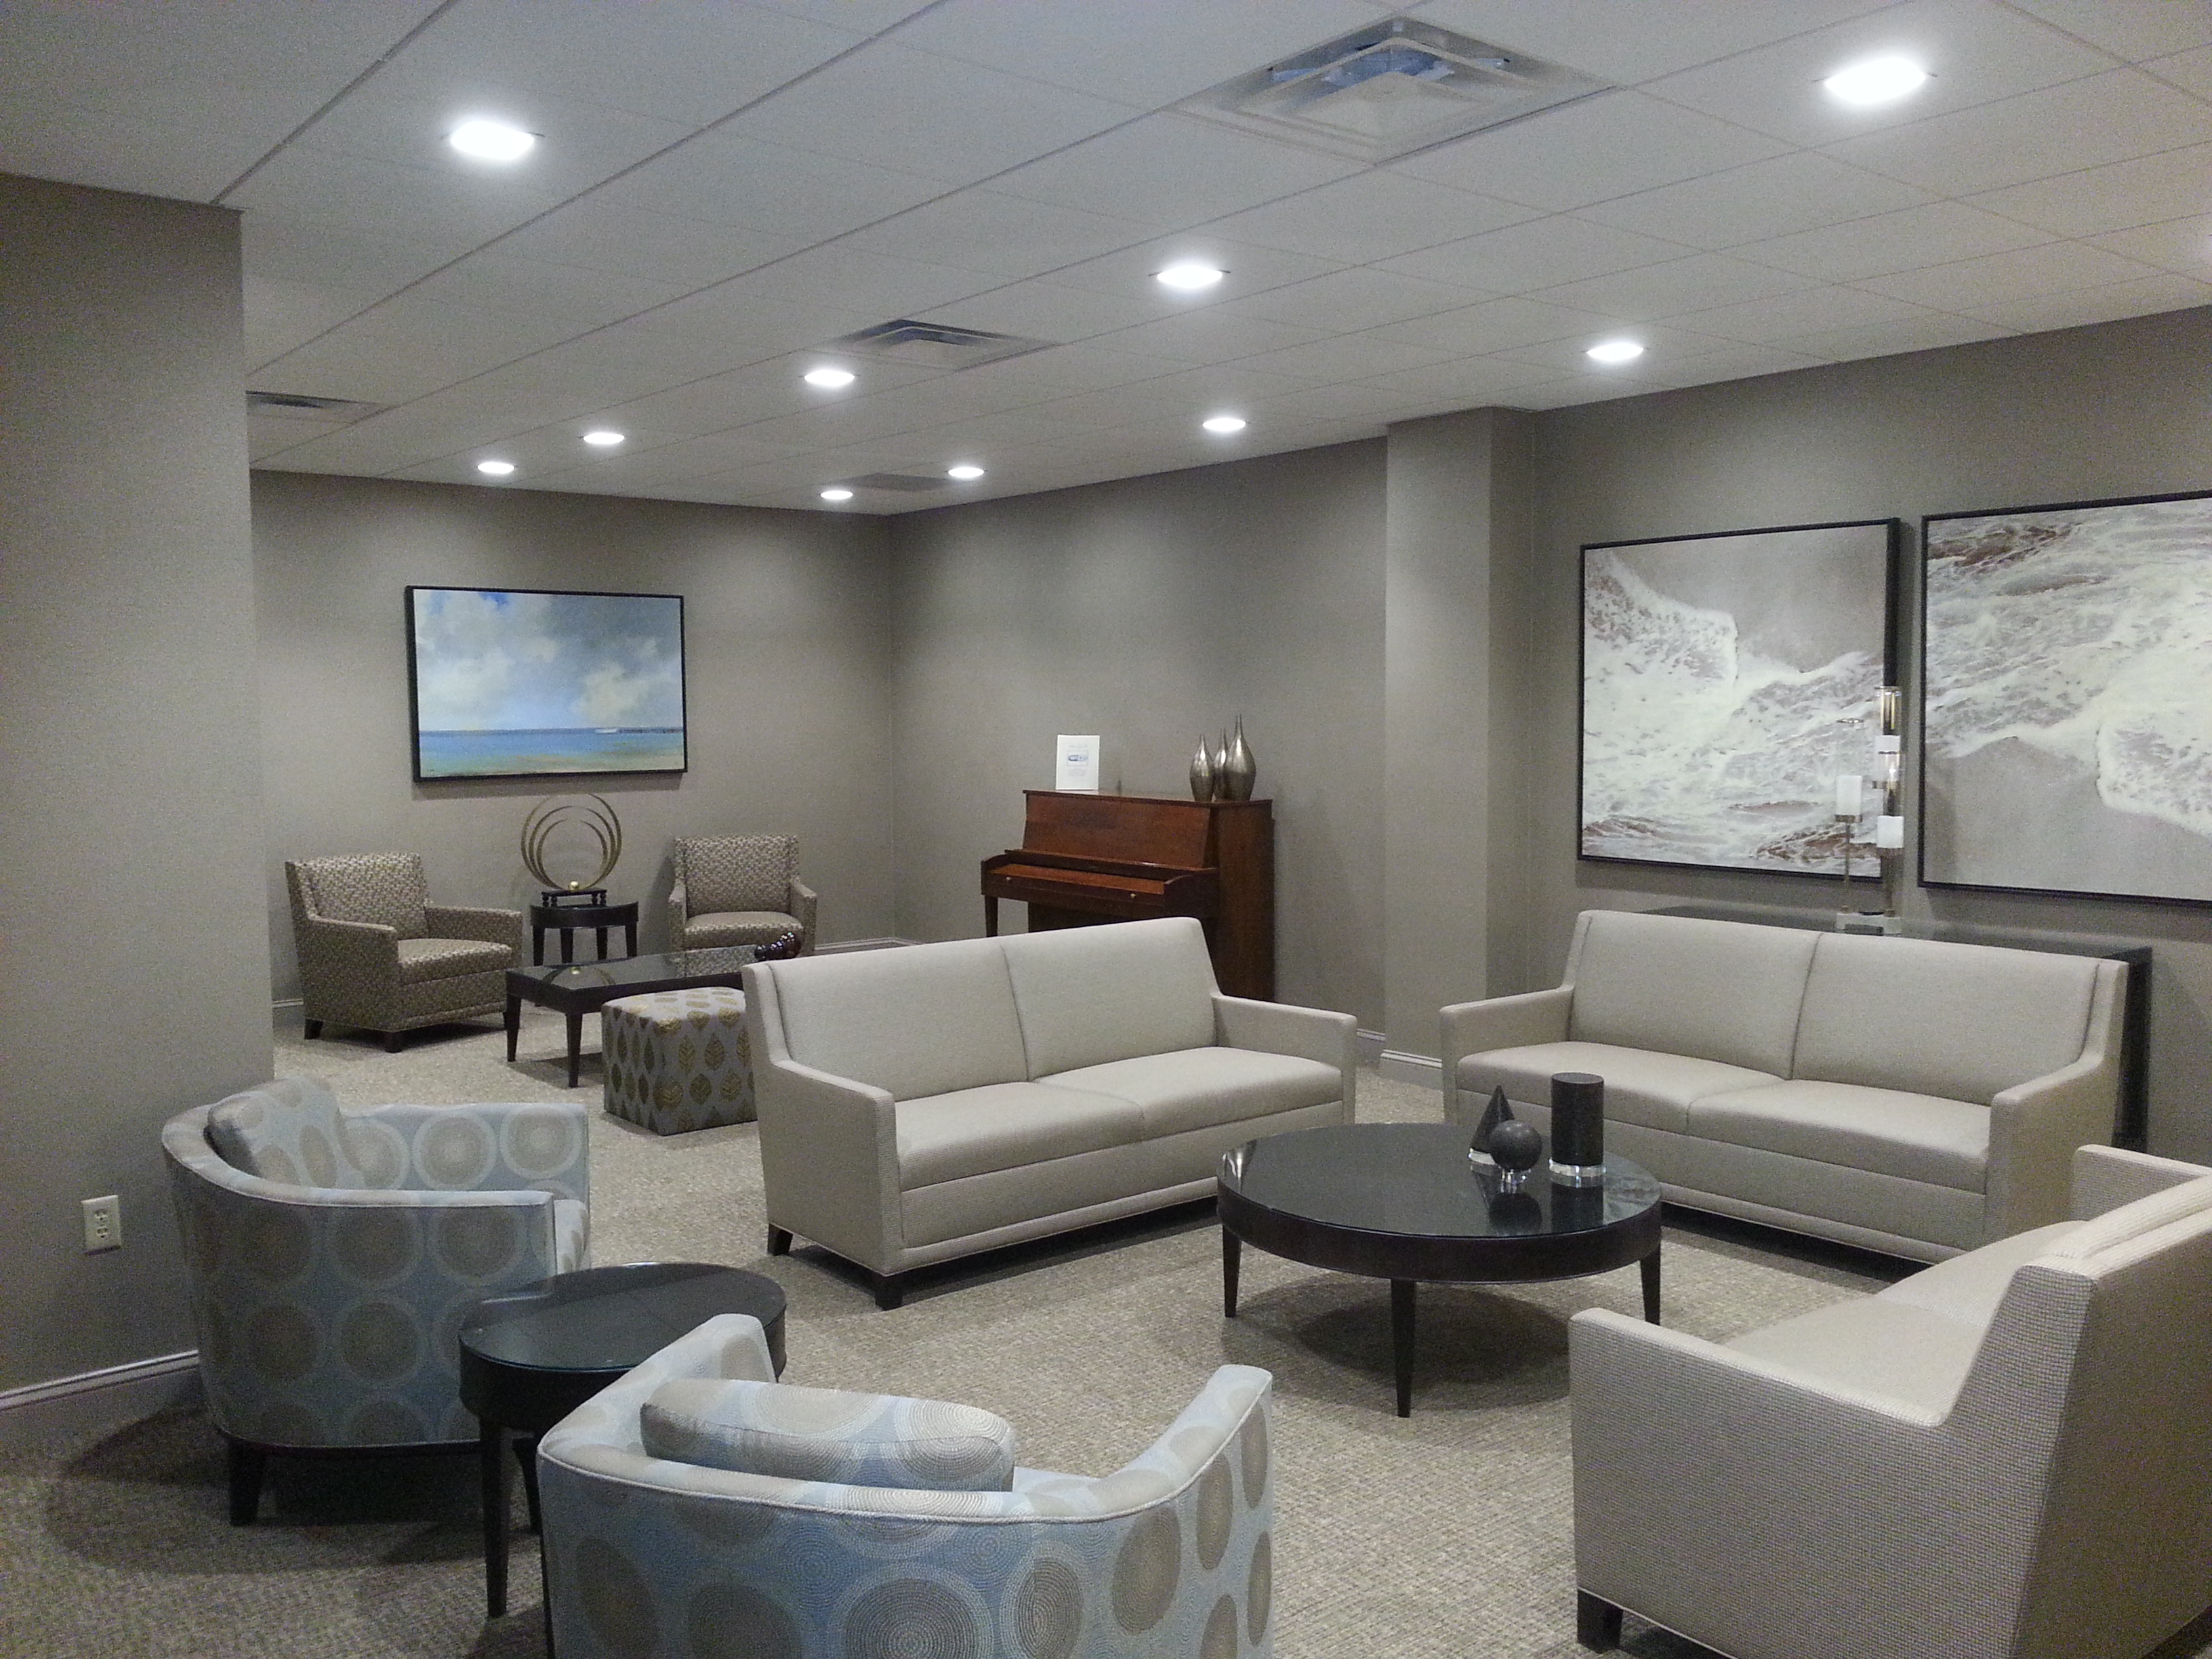 In addition to the lounge area, the social room has a pool table, card tables and a kitchen.